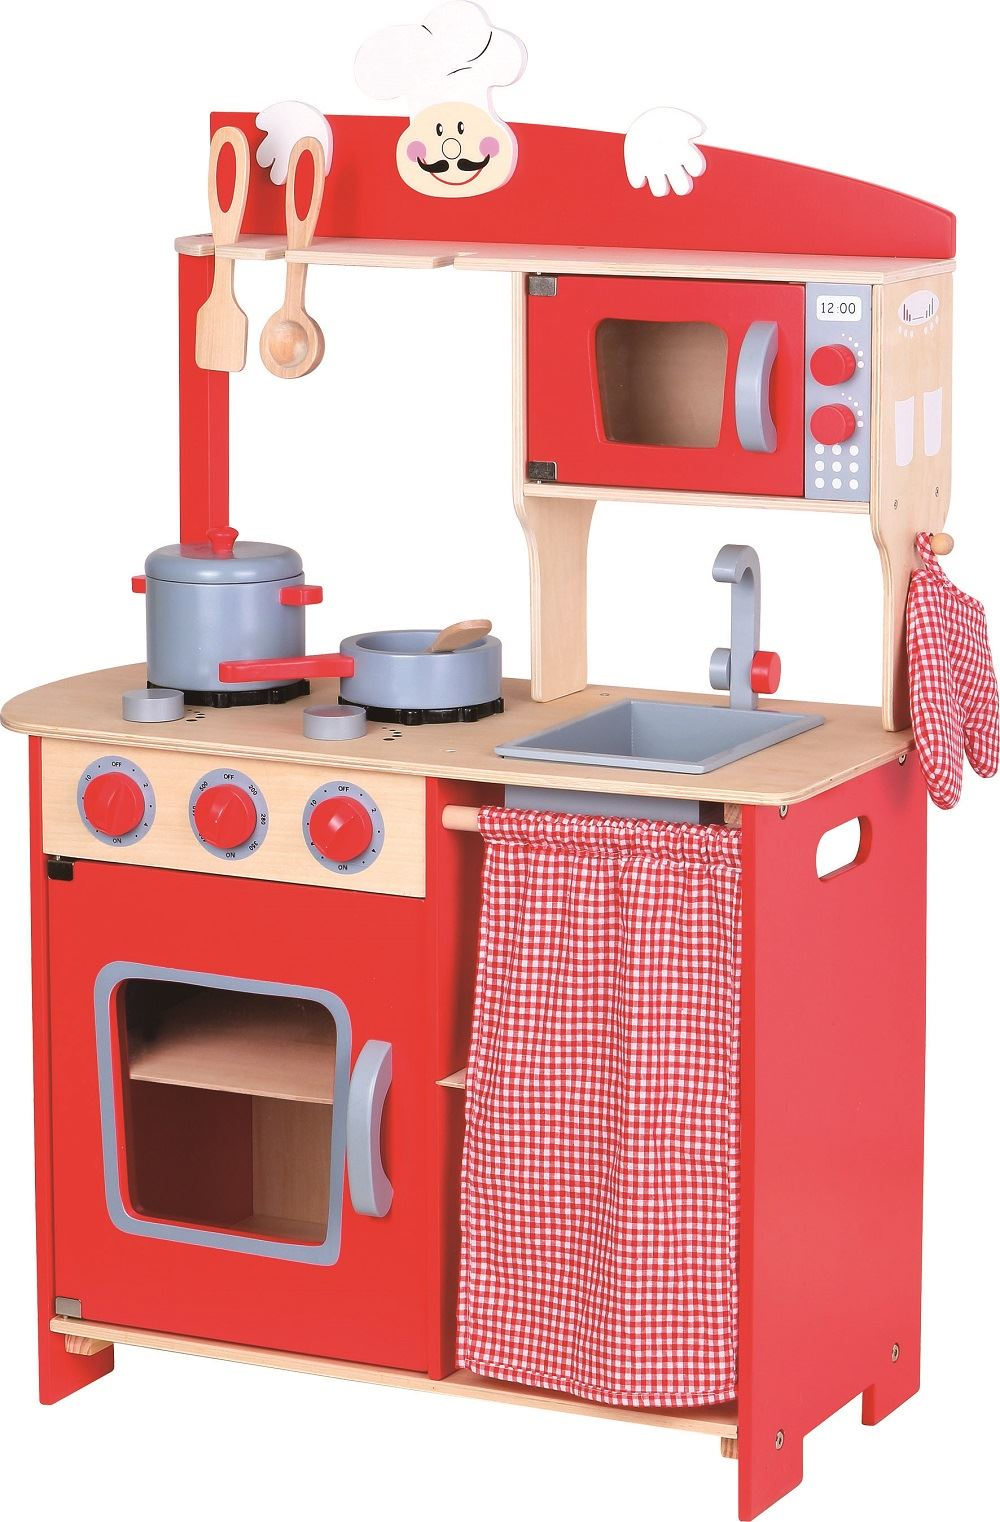 Lelin Wooden Wood Childrens Kids Pretend Play Saffron Kitchen Cooking Oven Toy Ebay